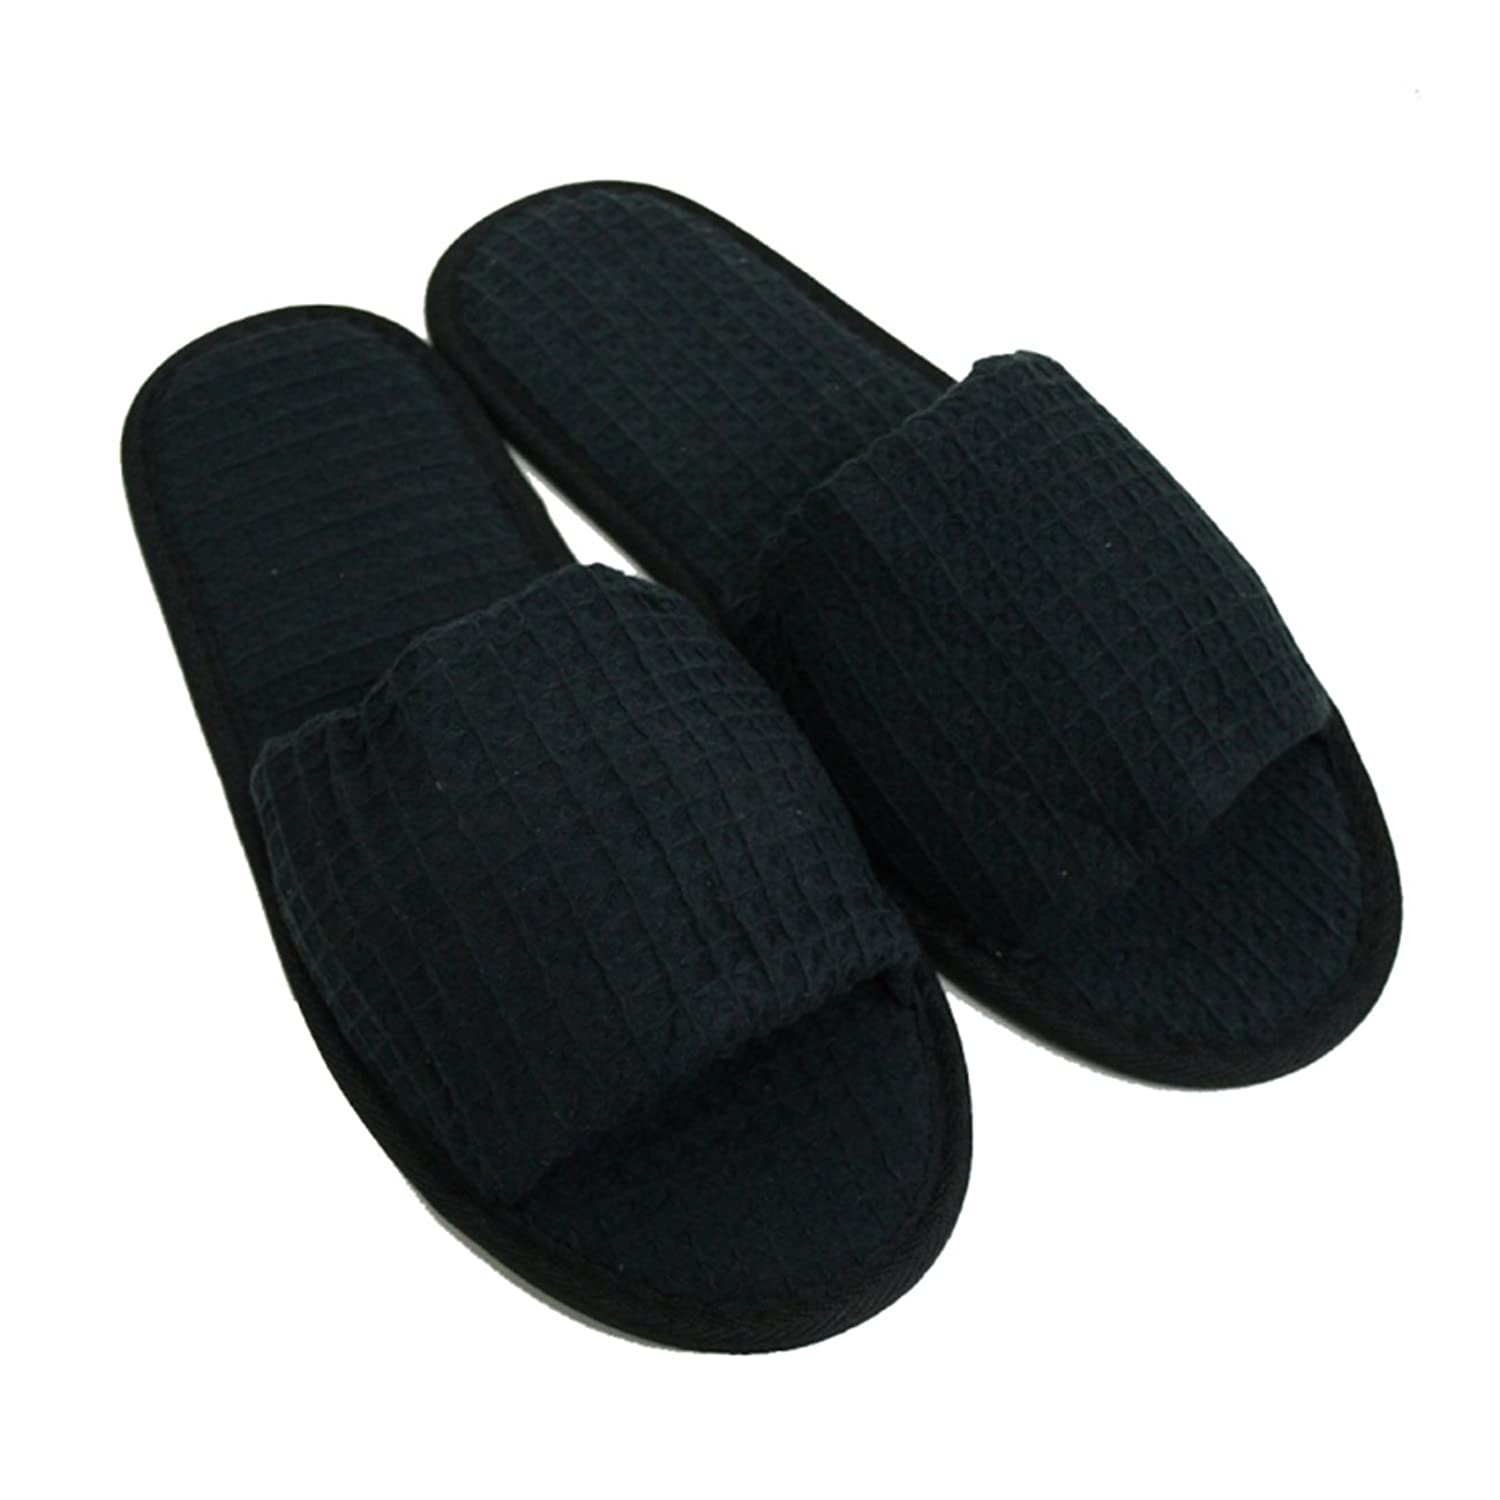 Waffle Open Toe Adult Slippers Cloth Spa Hotel Unisex Slippers for Women and Men